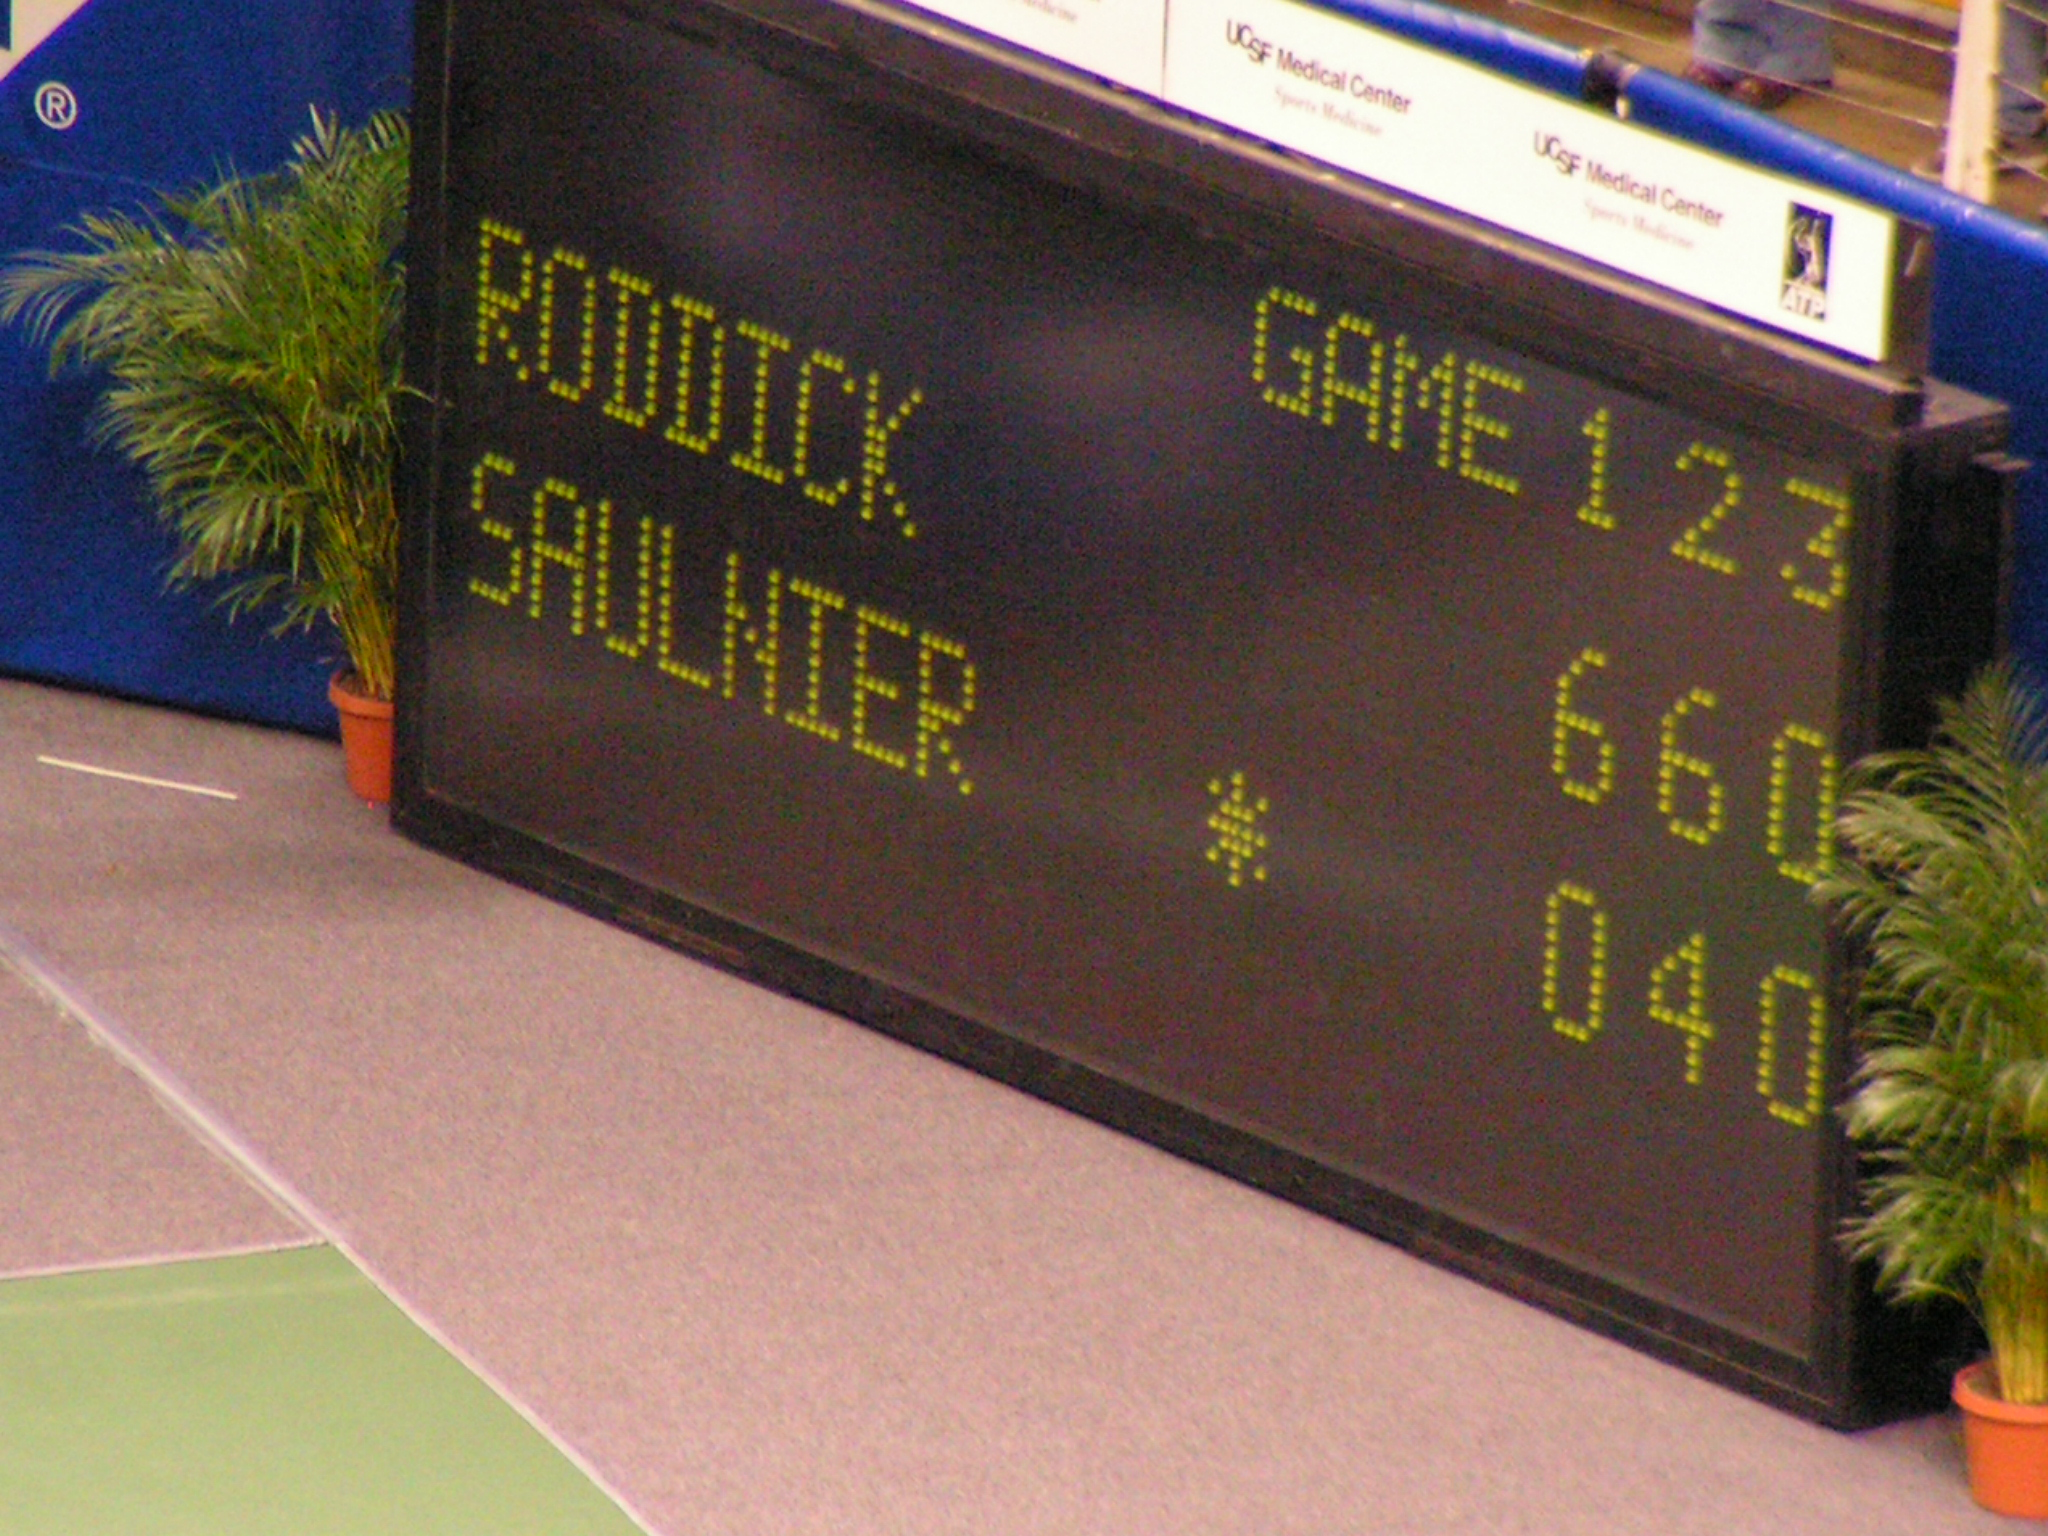 Final_Score_Andy_Roddick_vs_Saulnier.jpg